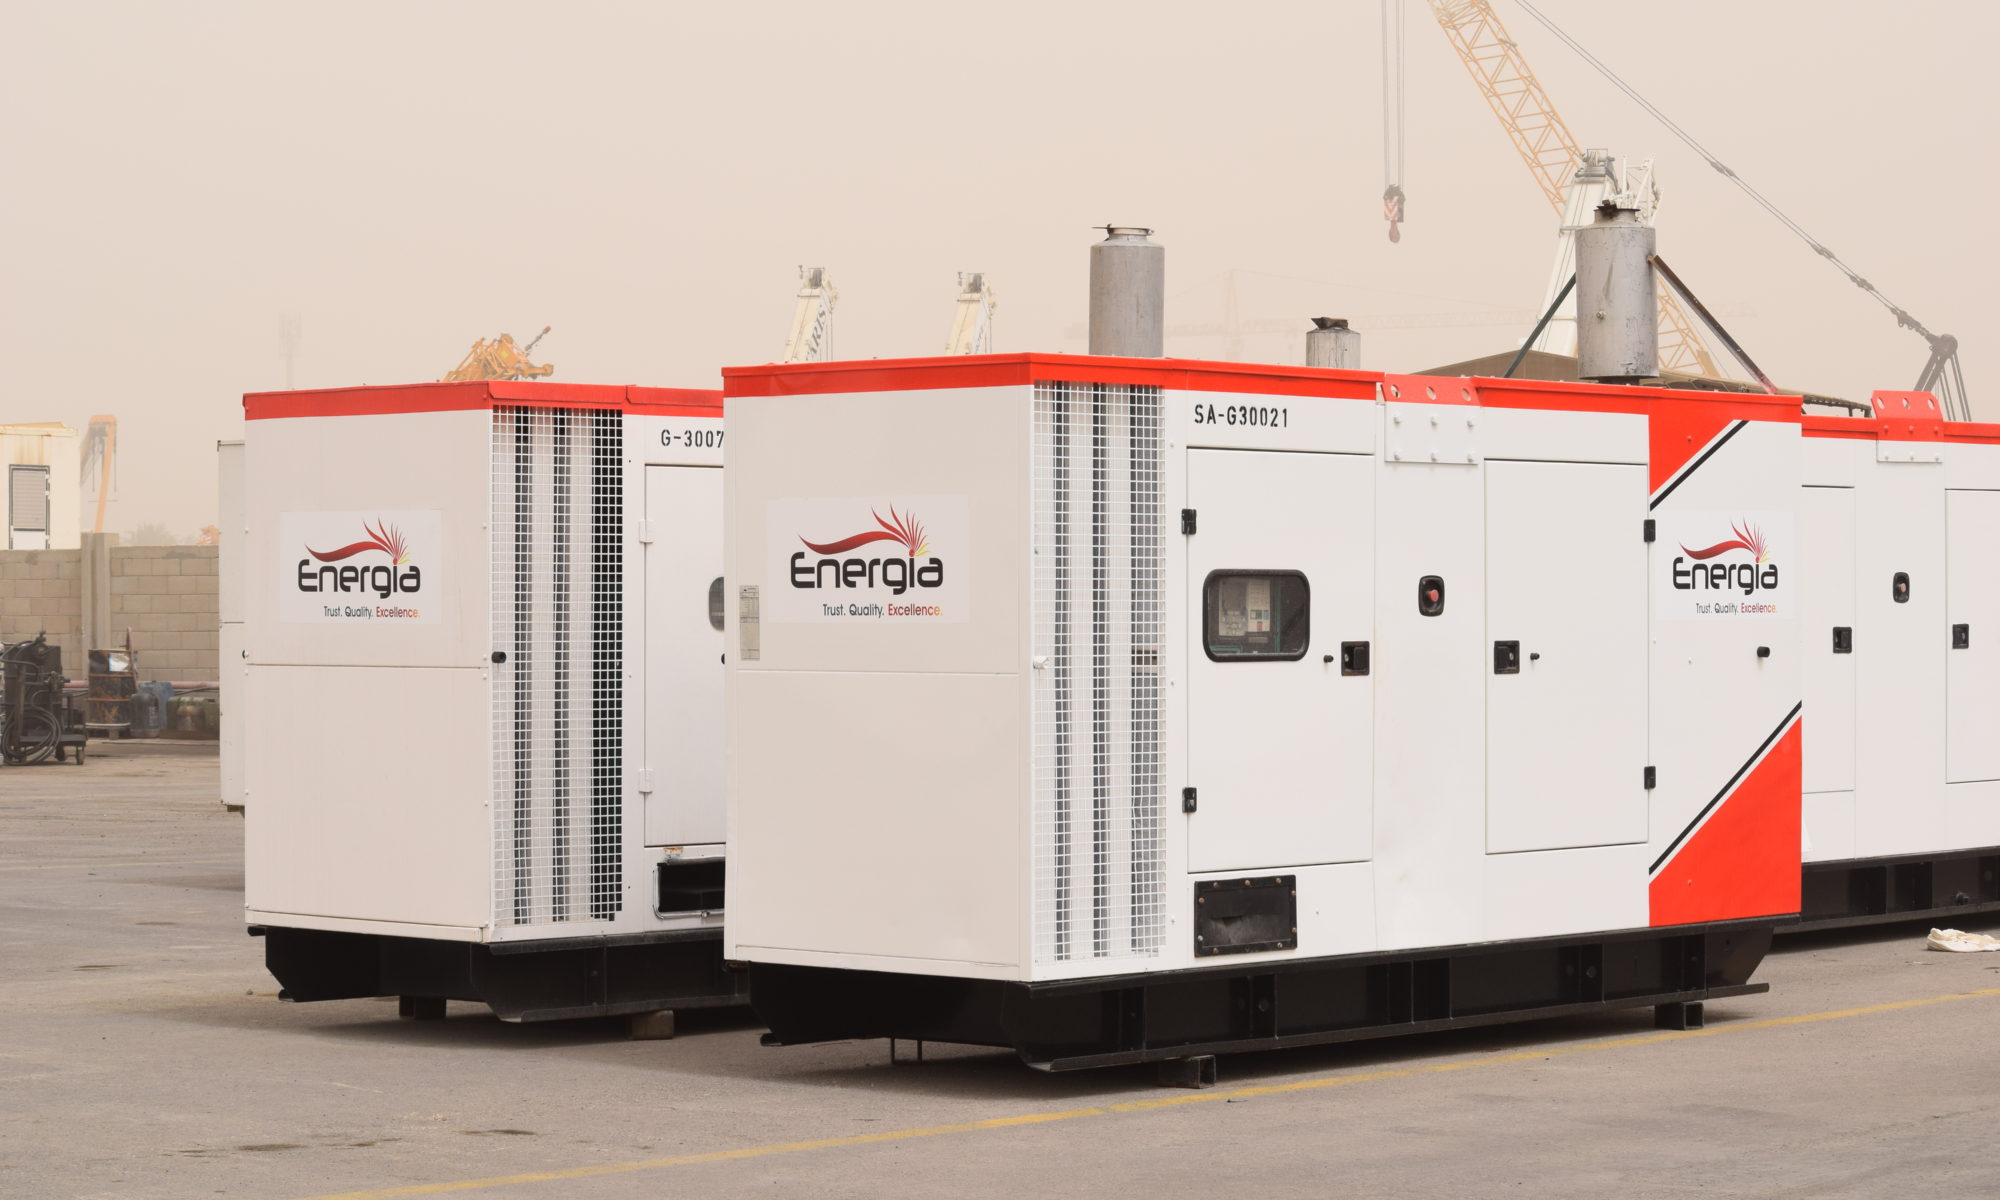 Energia Load demand generators